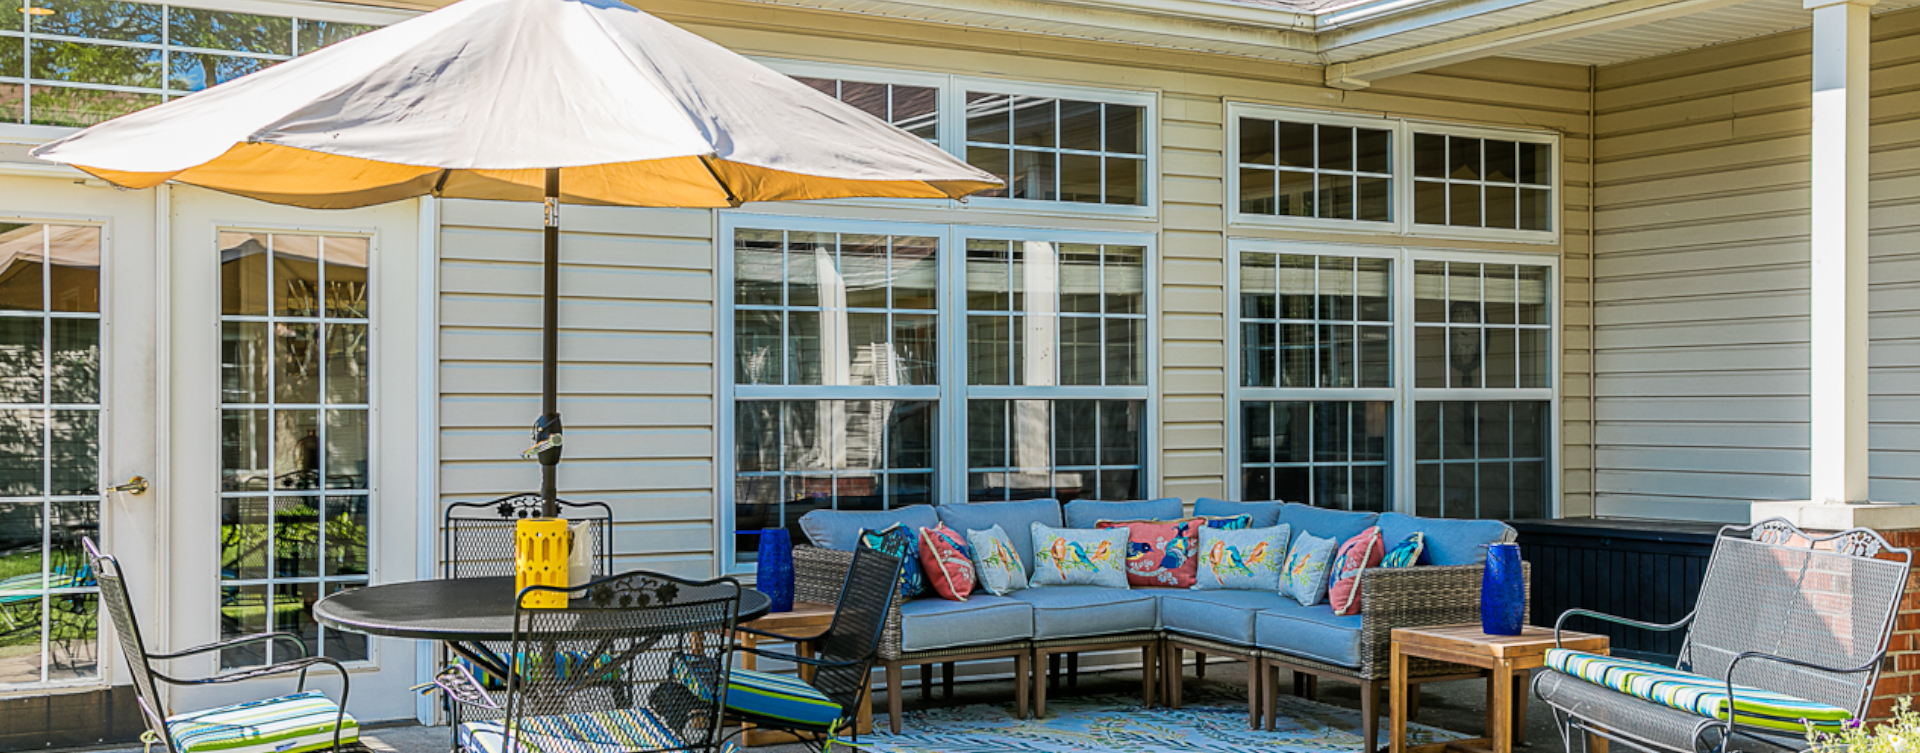 Residents with dementia can enjoy a traveling path, relaxed seating and raised garden beds in the courtyard at Bickford of Sioux City